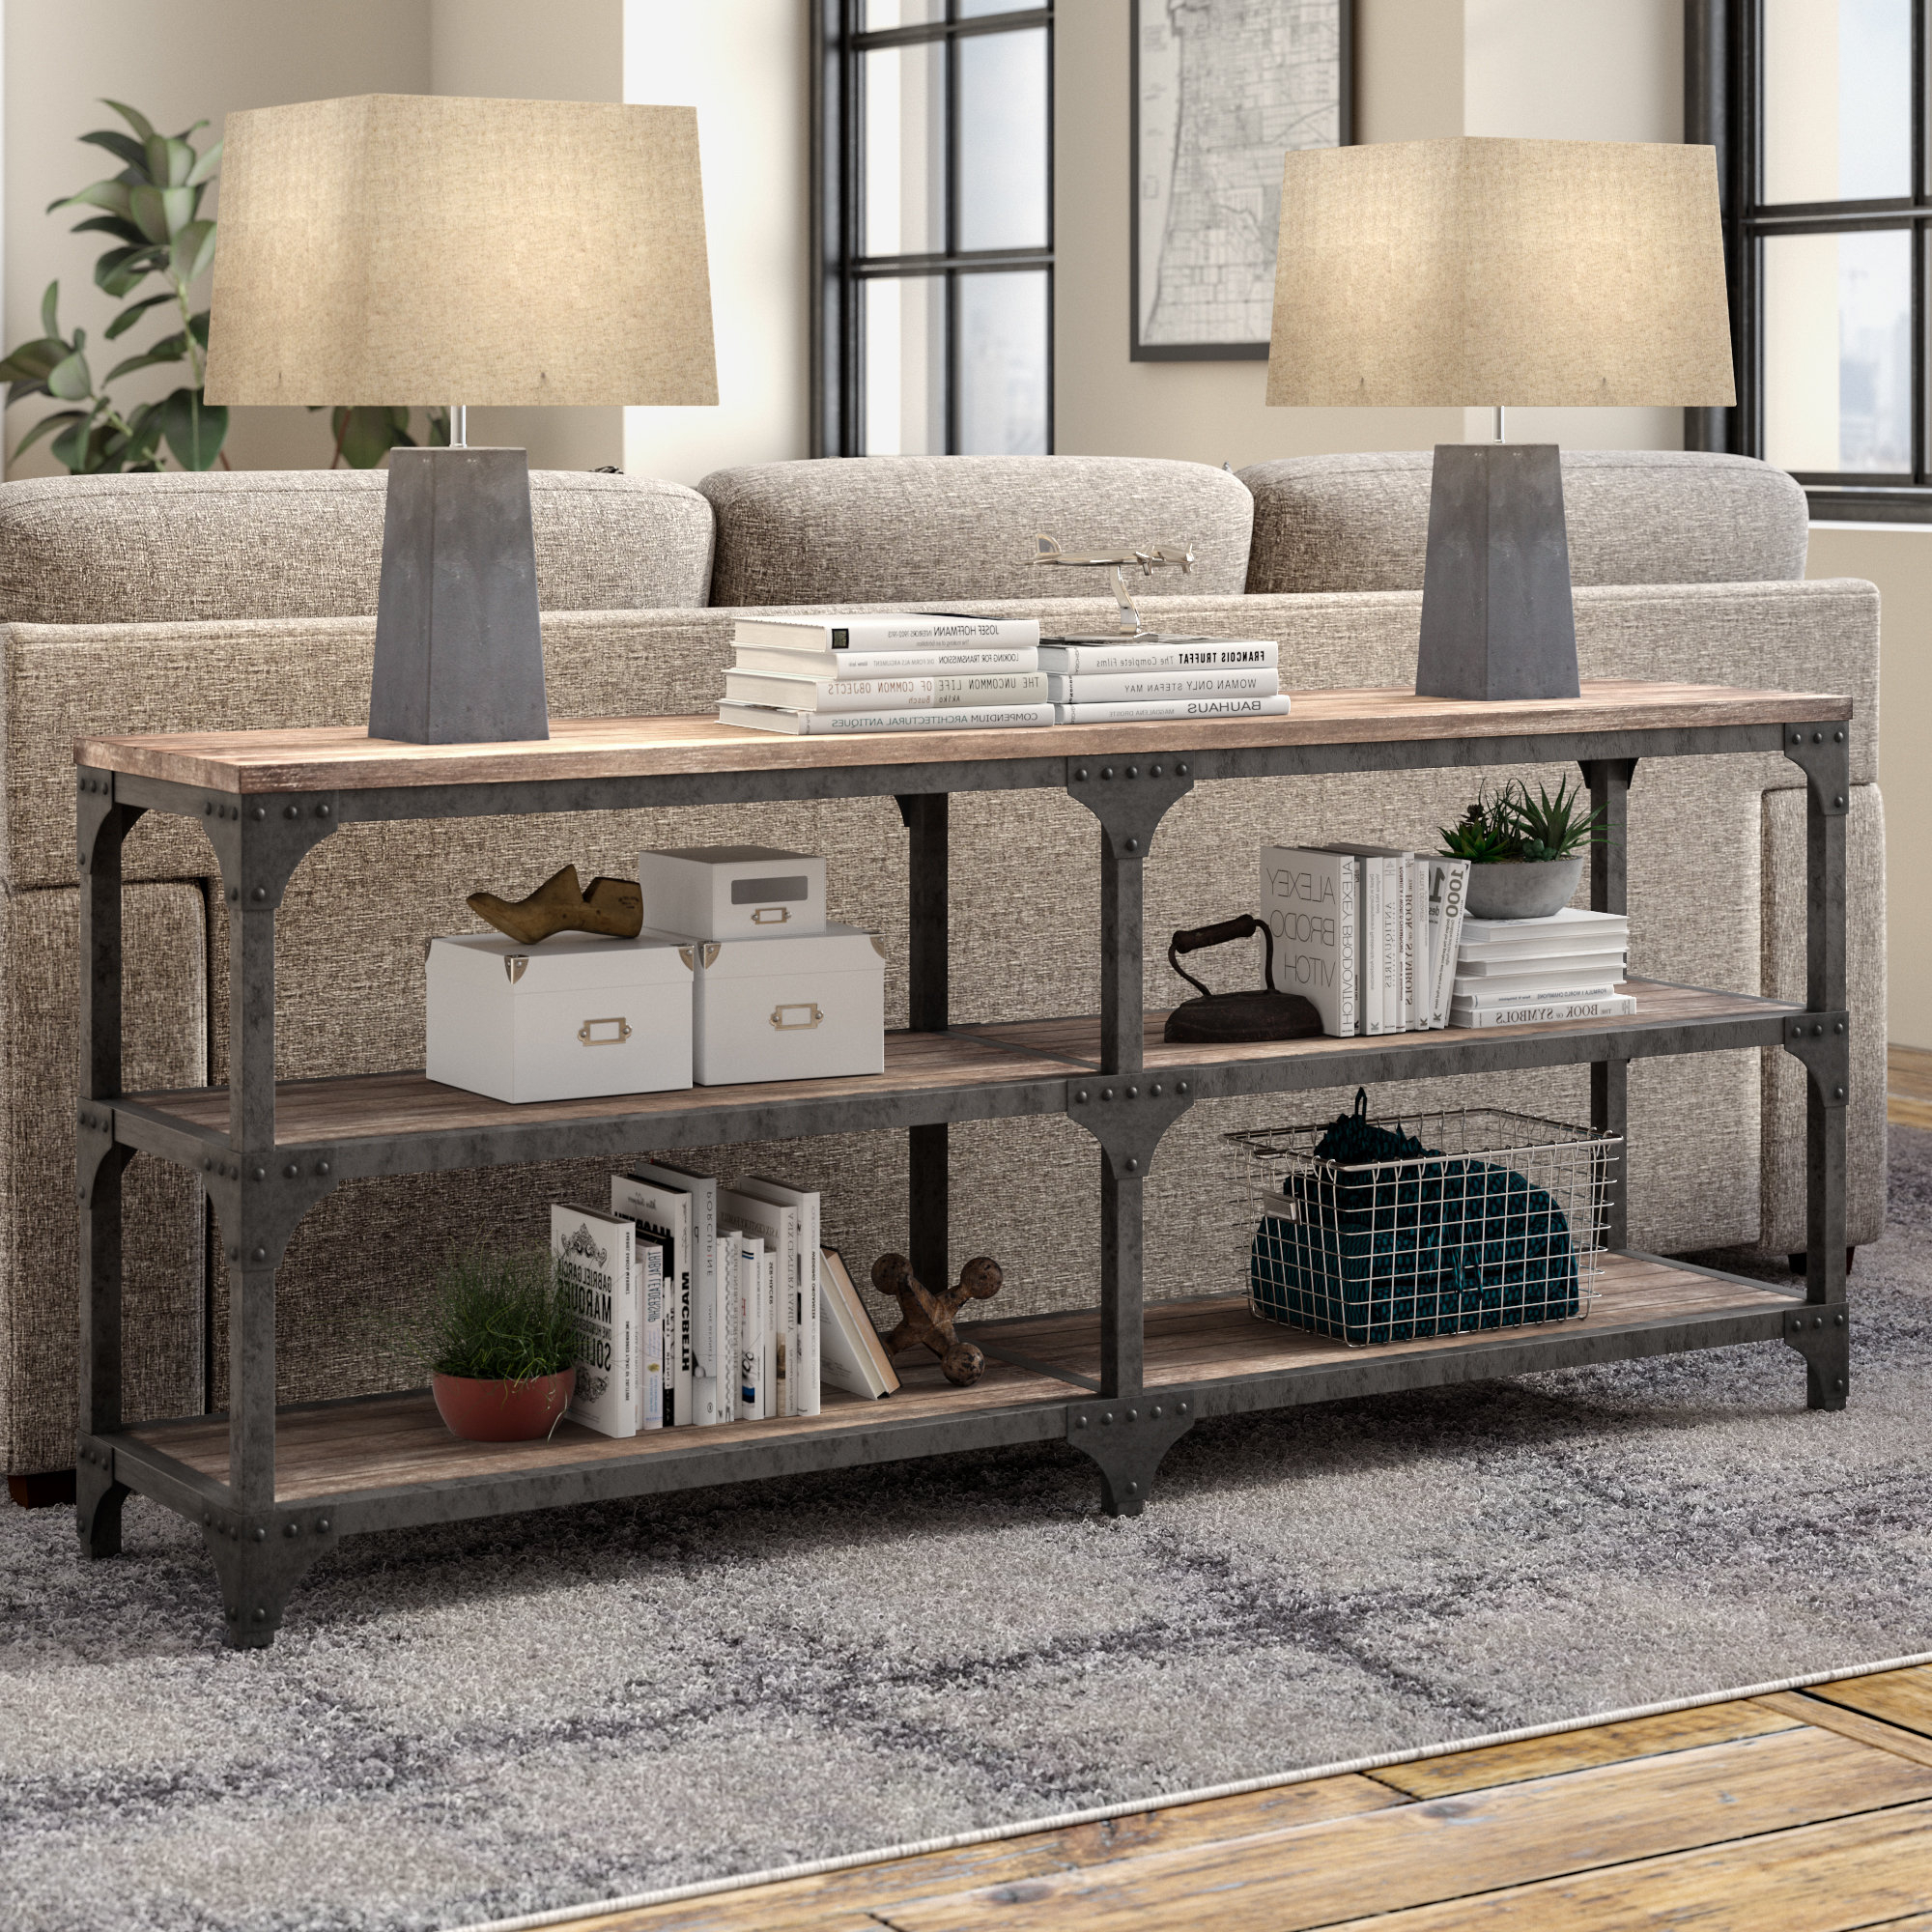 Industrial Console Tables You'll Love | Wayfair With Regard To Roman Metal Top Console Tables (View 11 of 20)